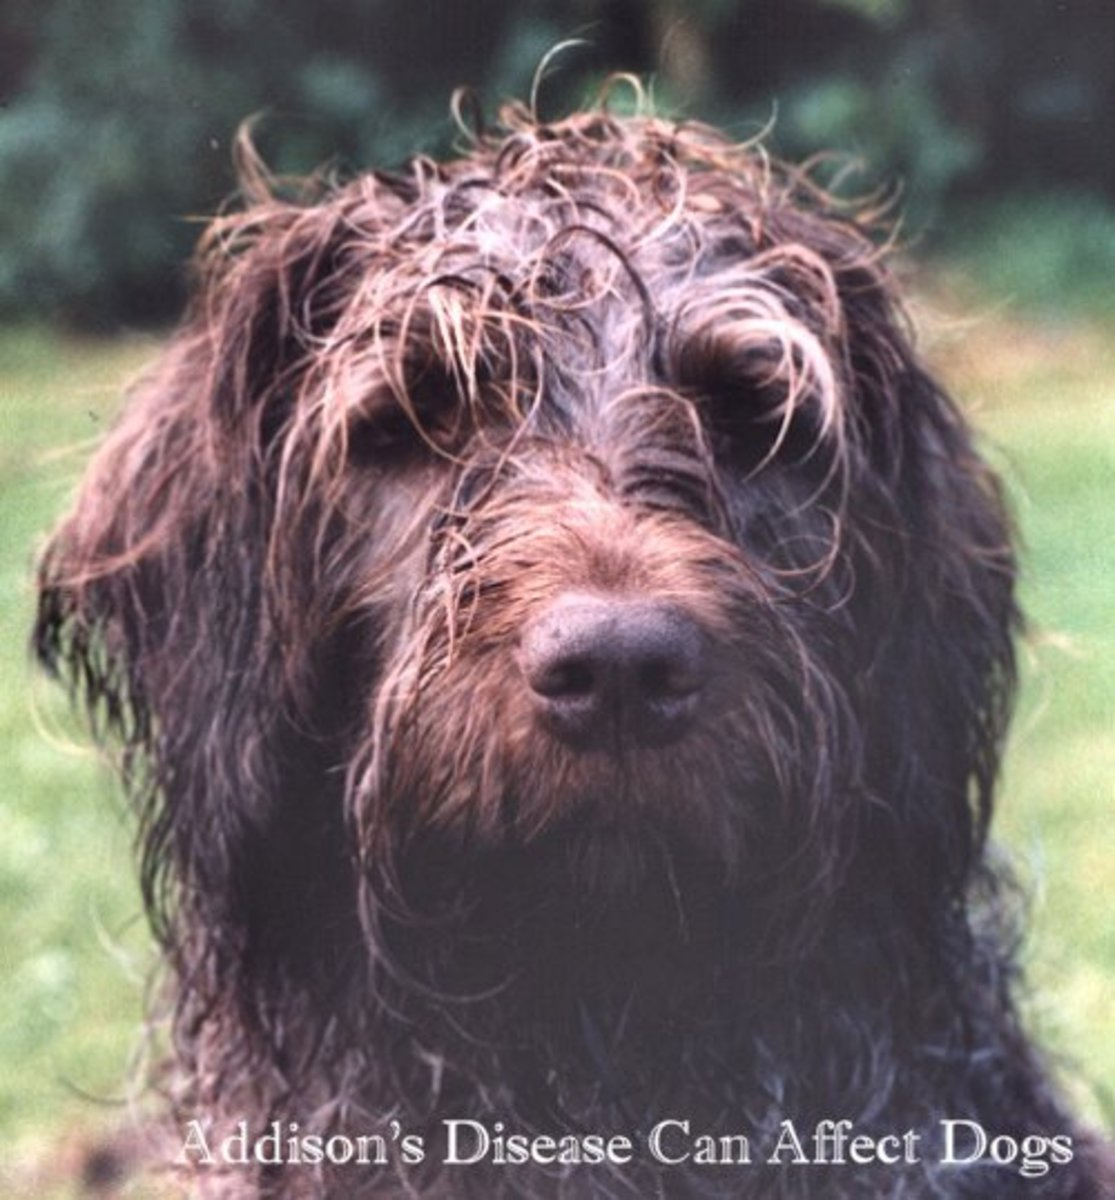 Dogs and Addison's disease